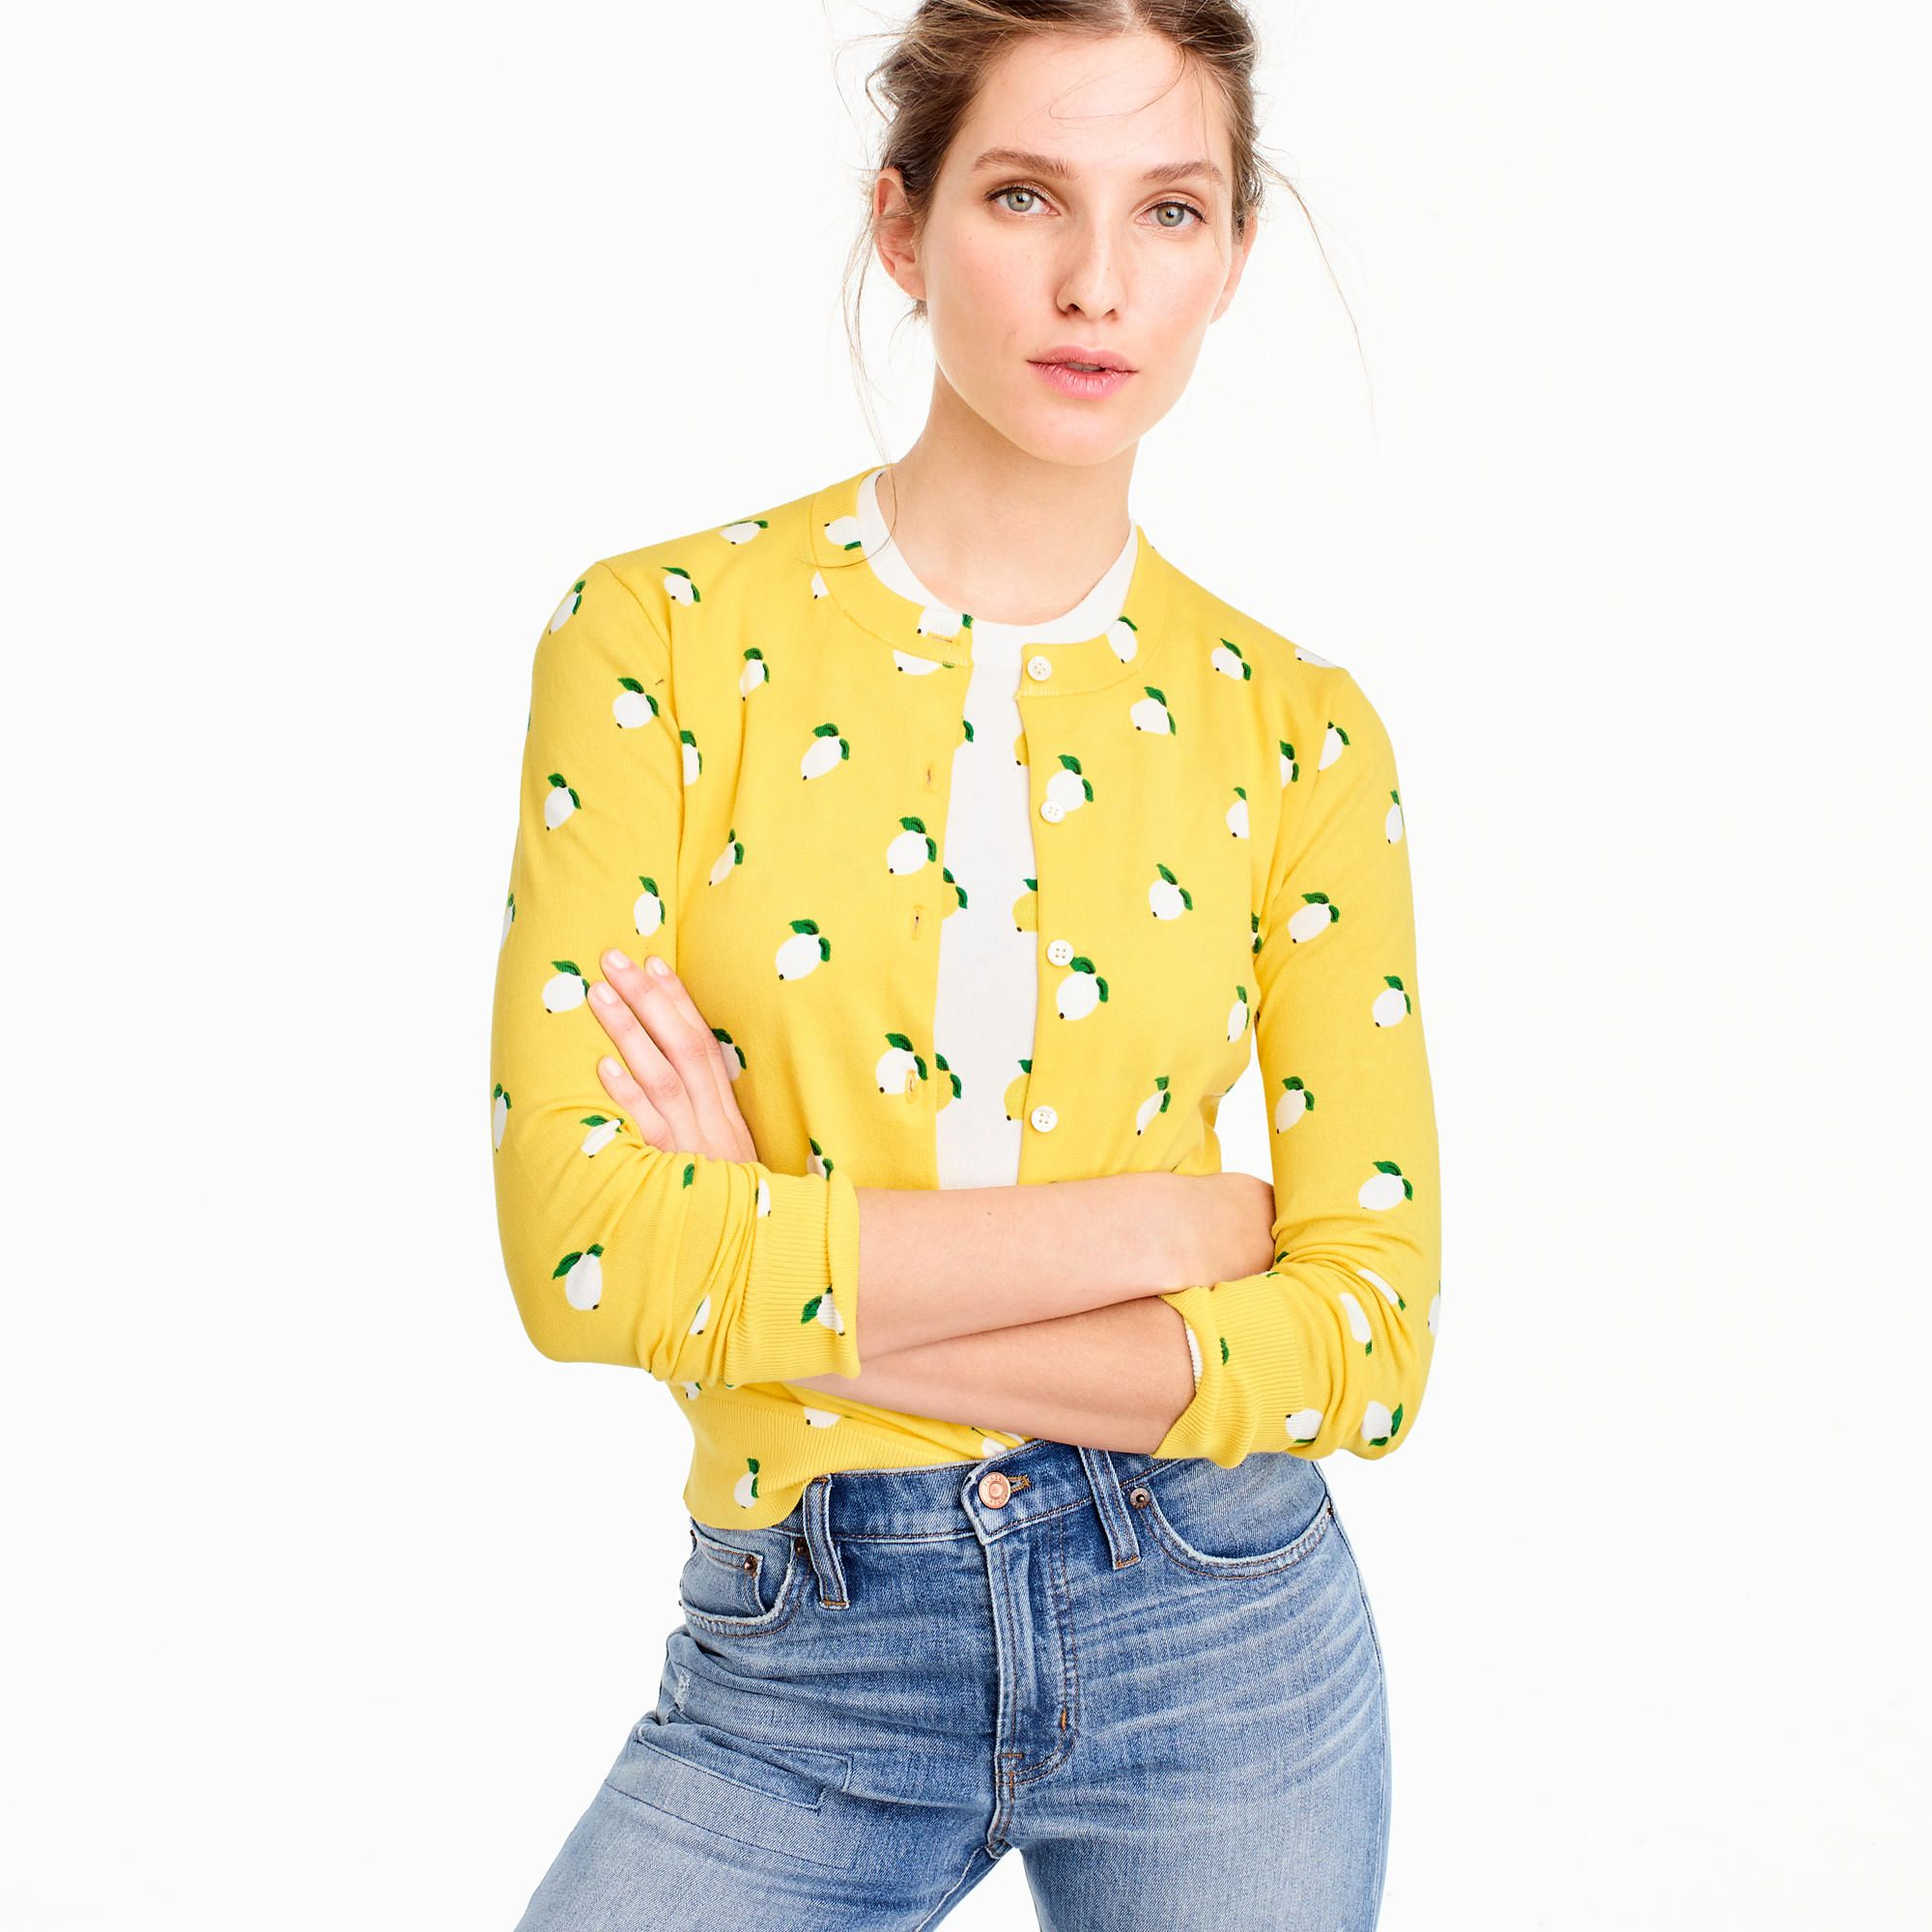 464687e4b6 Cotton Jackie cardigan sweater in lemon print : Women Cardigans & Shells | J .Crew